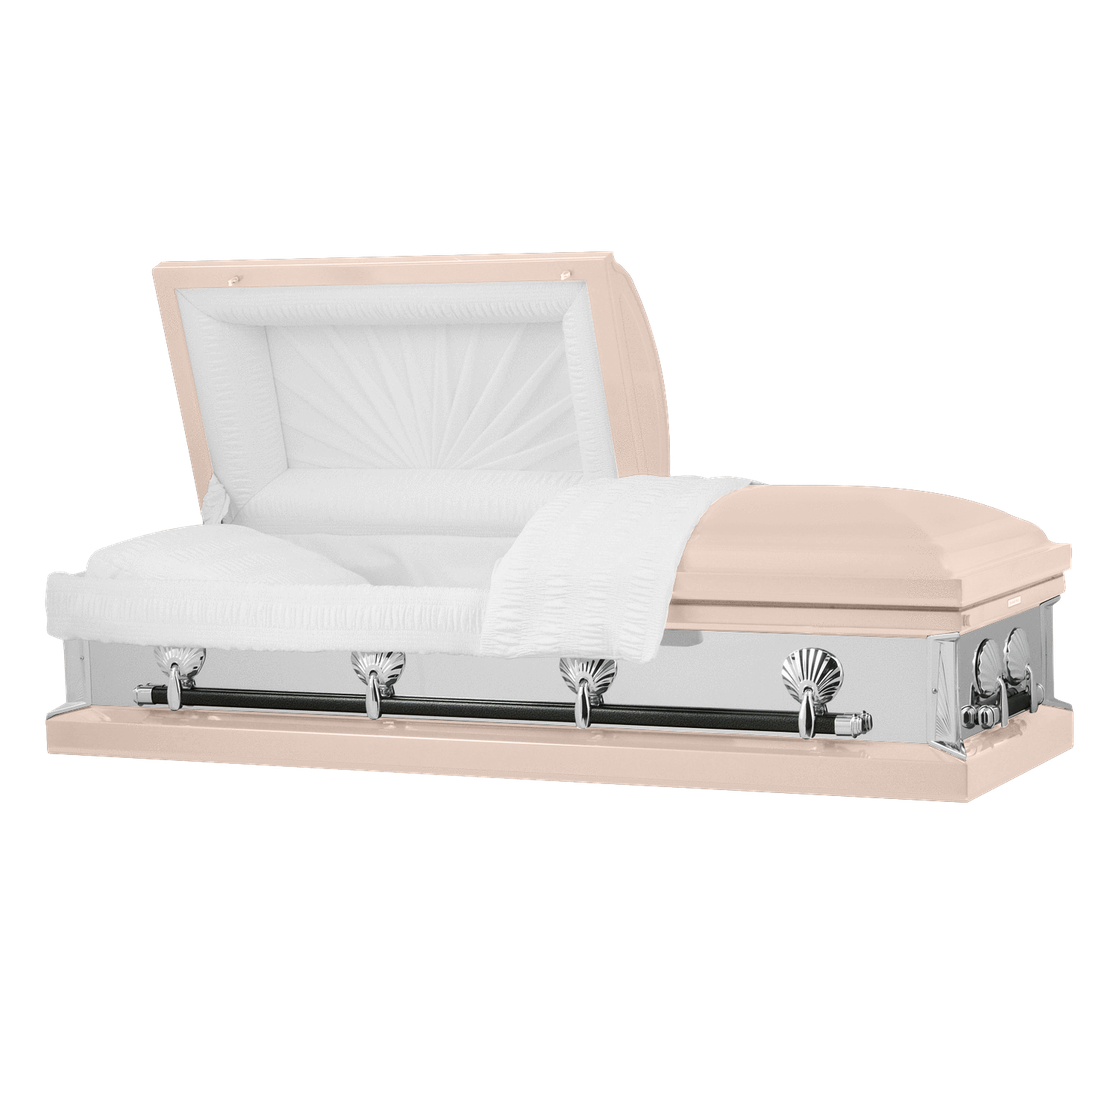 Photo of Titan Reflections Series   Pink Steel Casket with White Interior